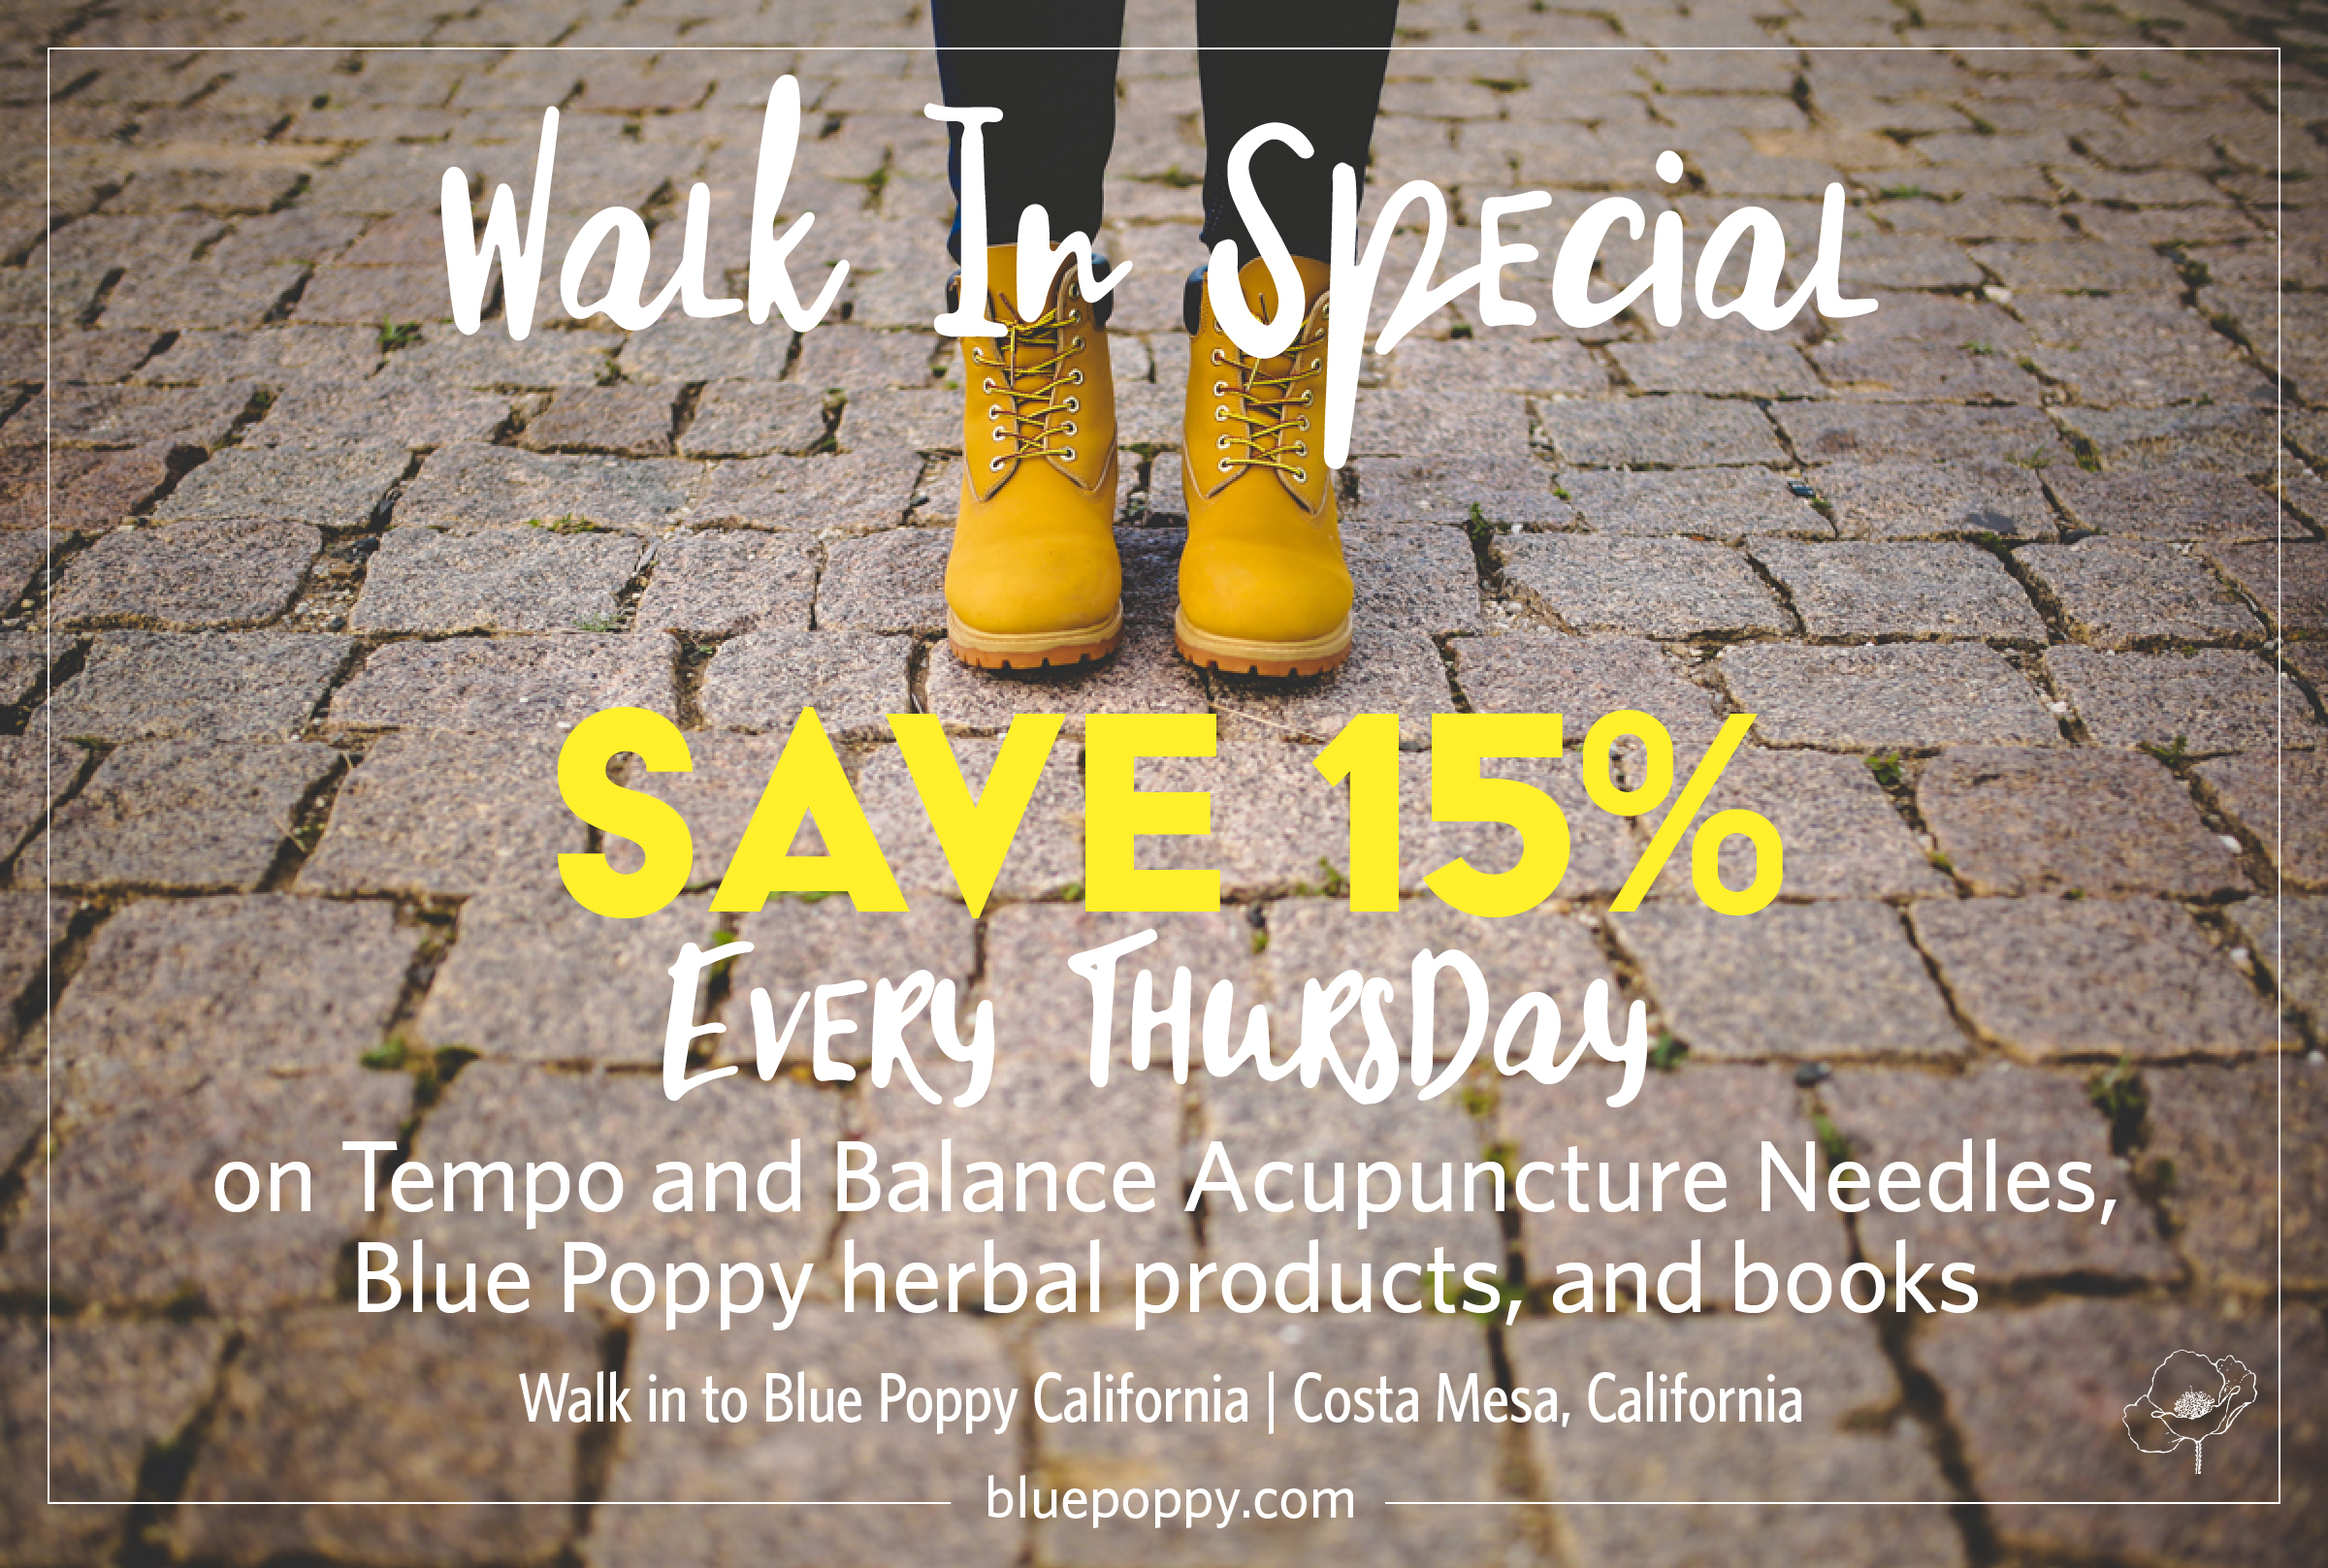 Blue Poppy Costa Mesa Branch - Walk In Thursdays